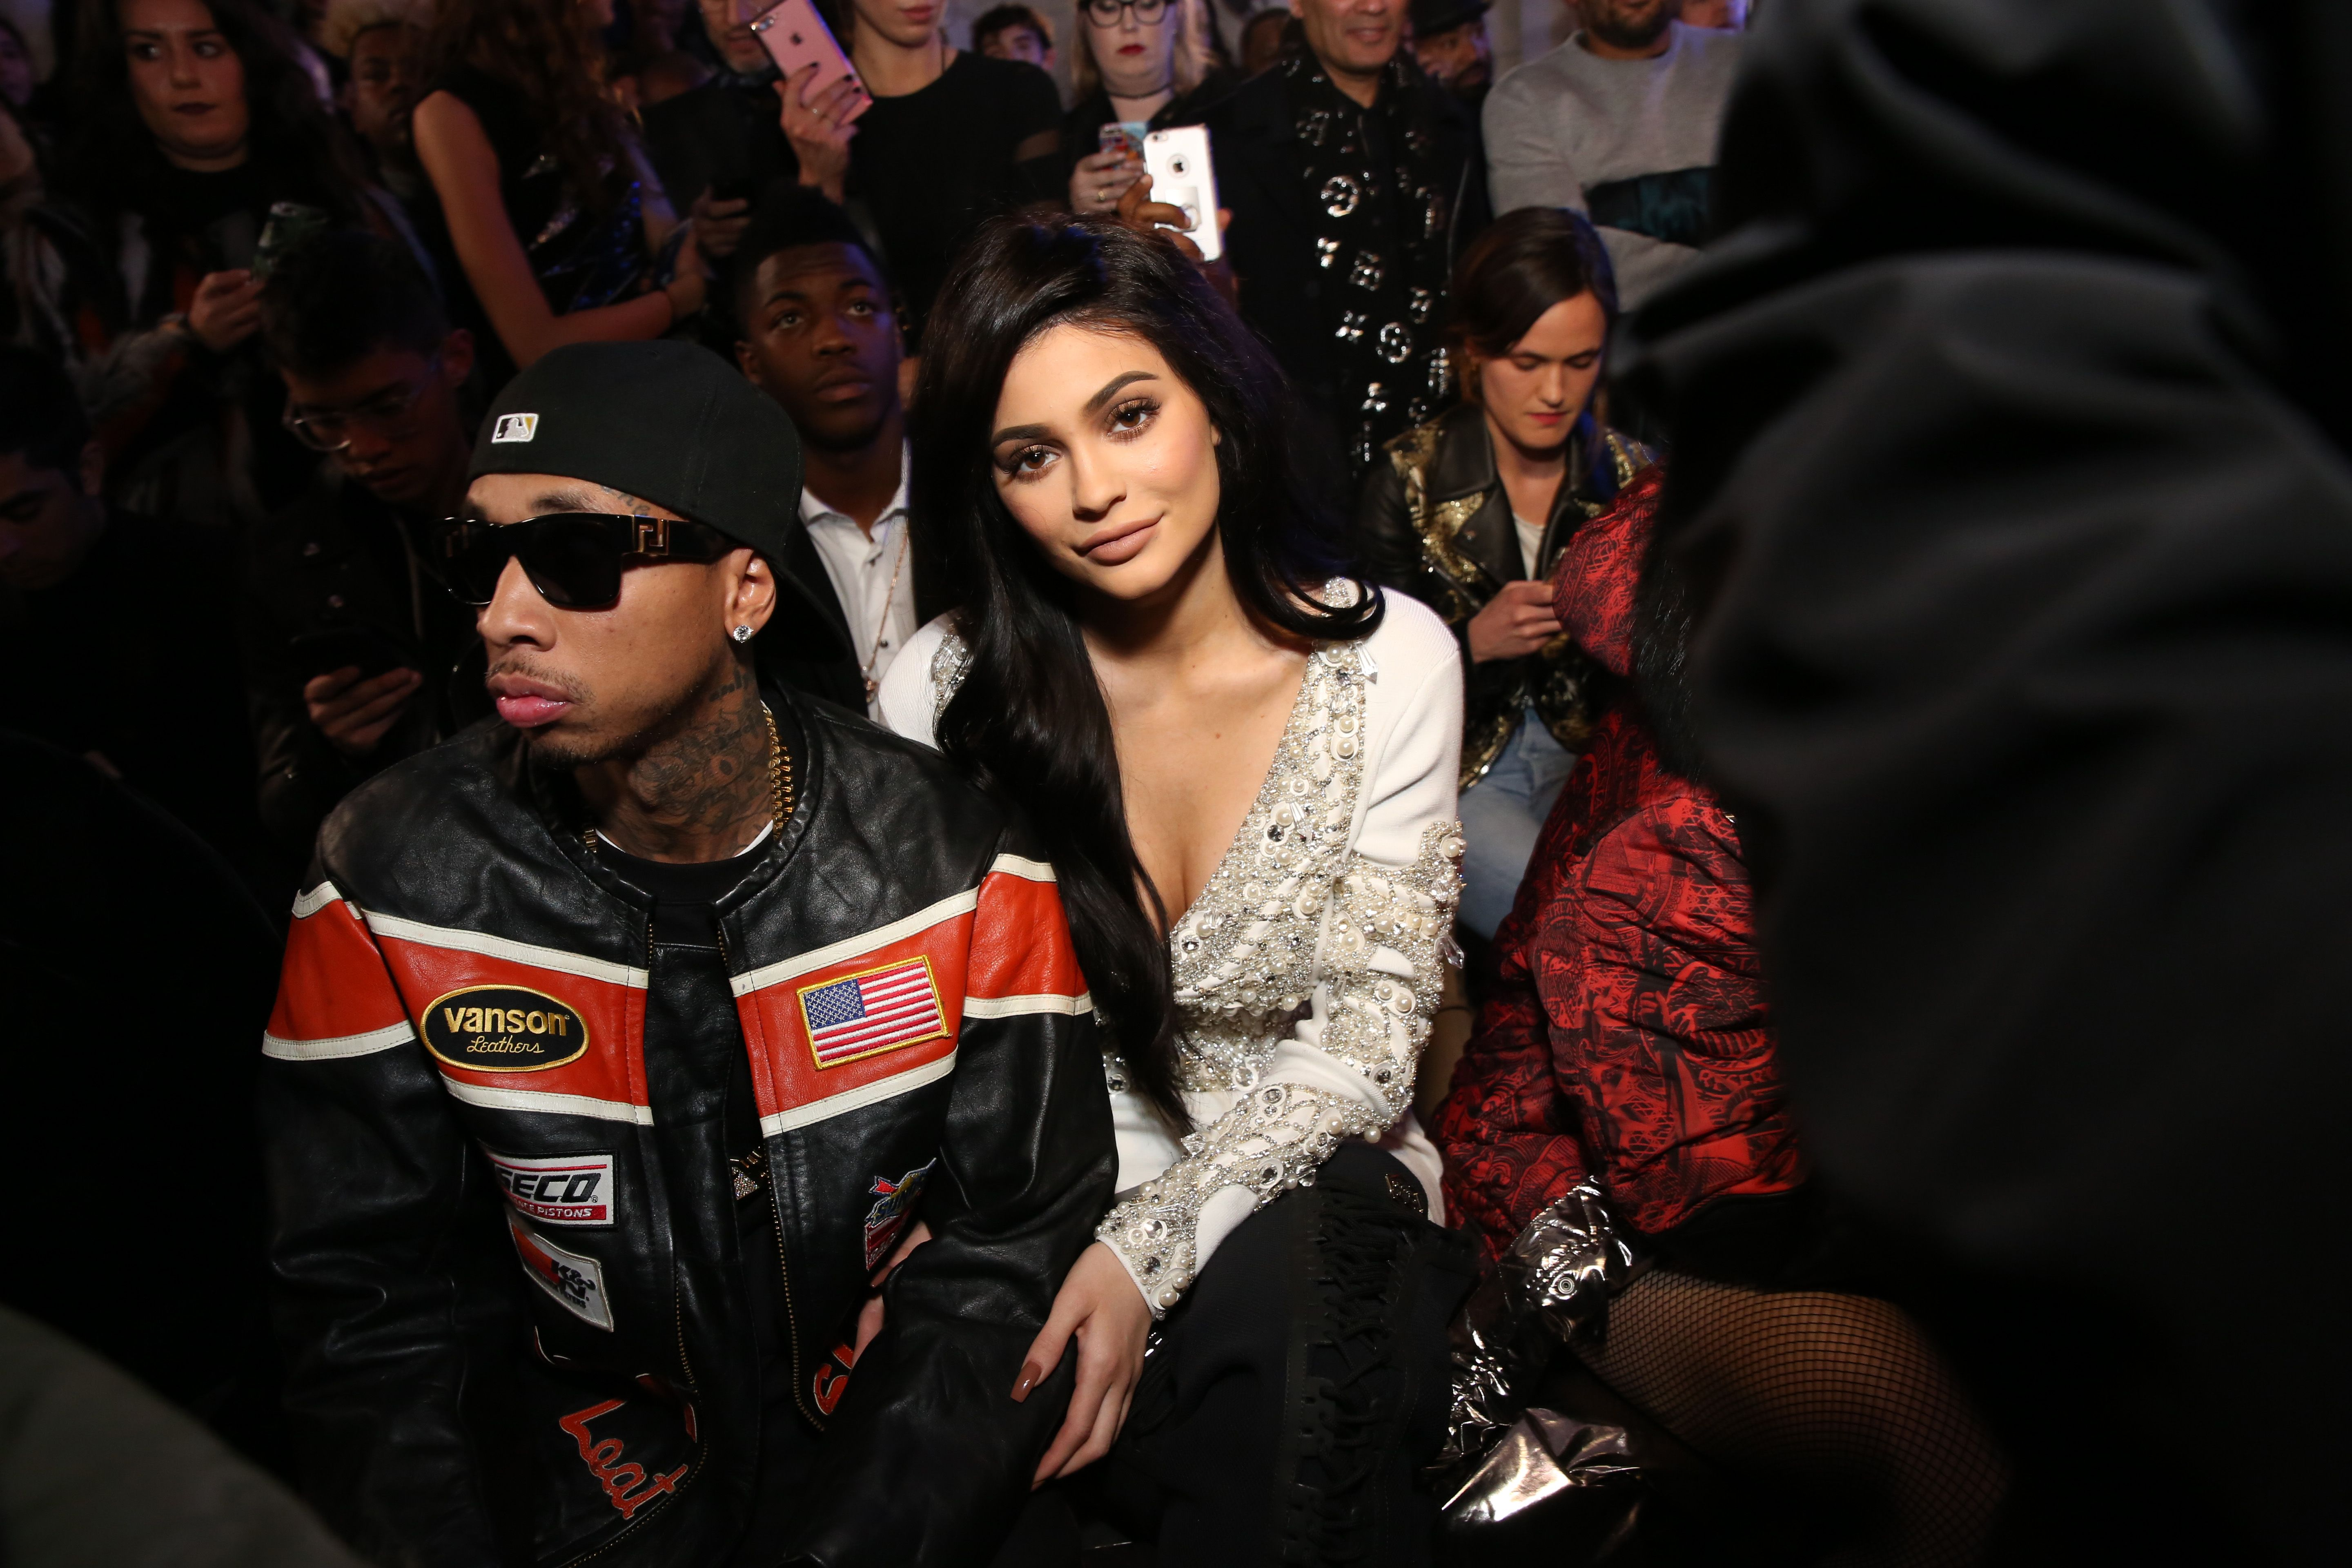 Kylie Jenner Makes Late Night Trip To Tyga's Recording Studio After Travis Scott Breakup